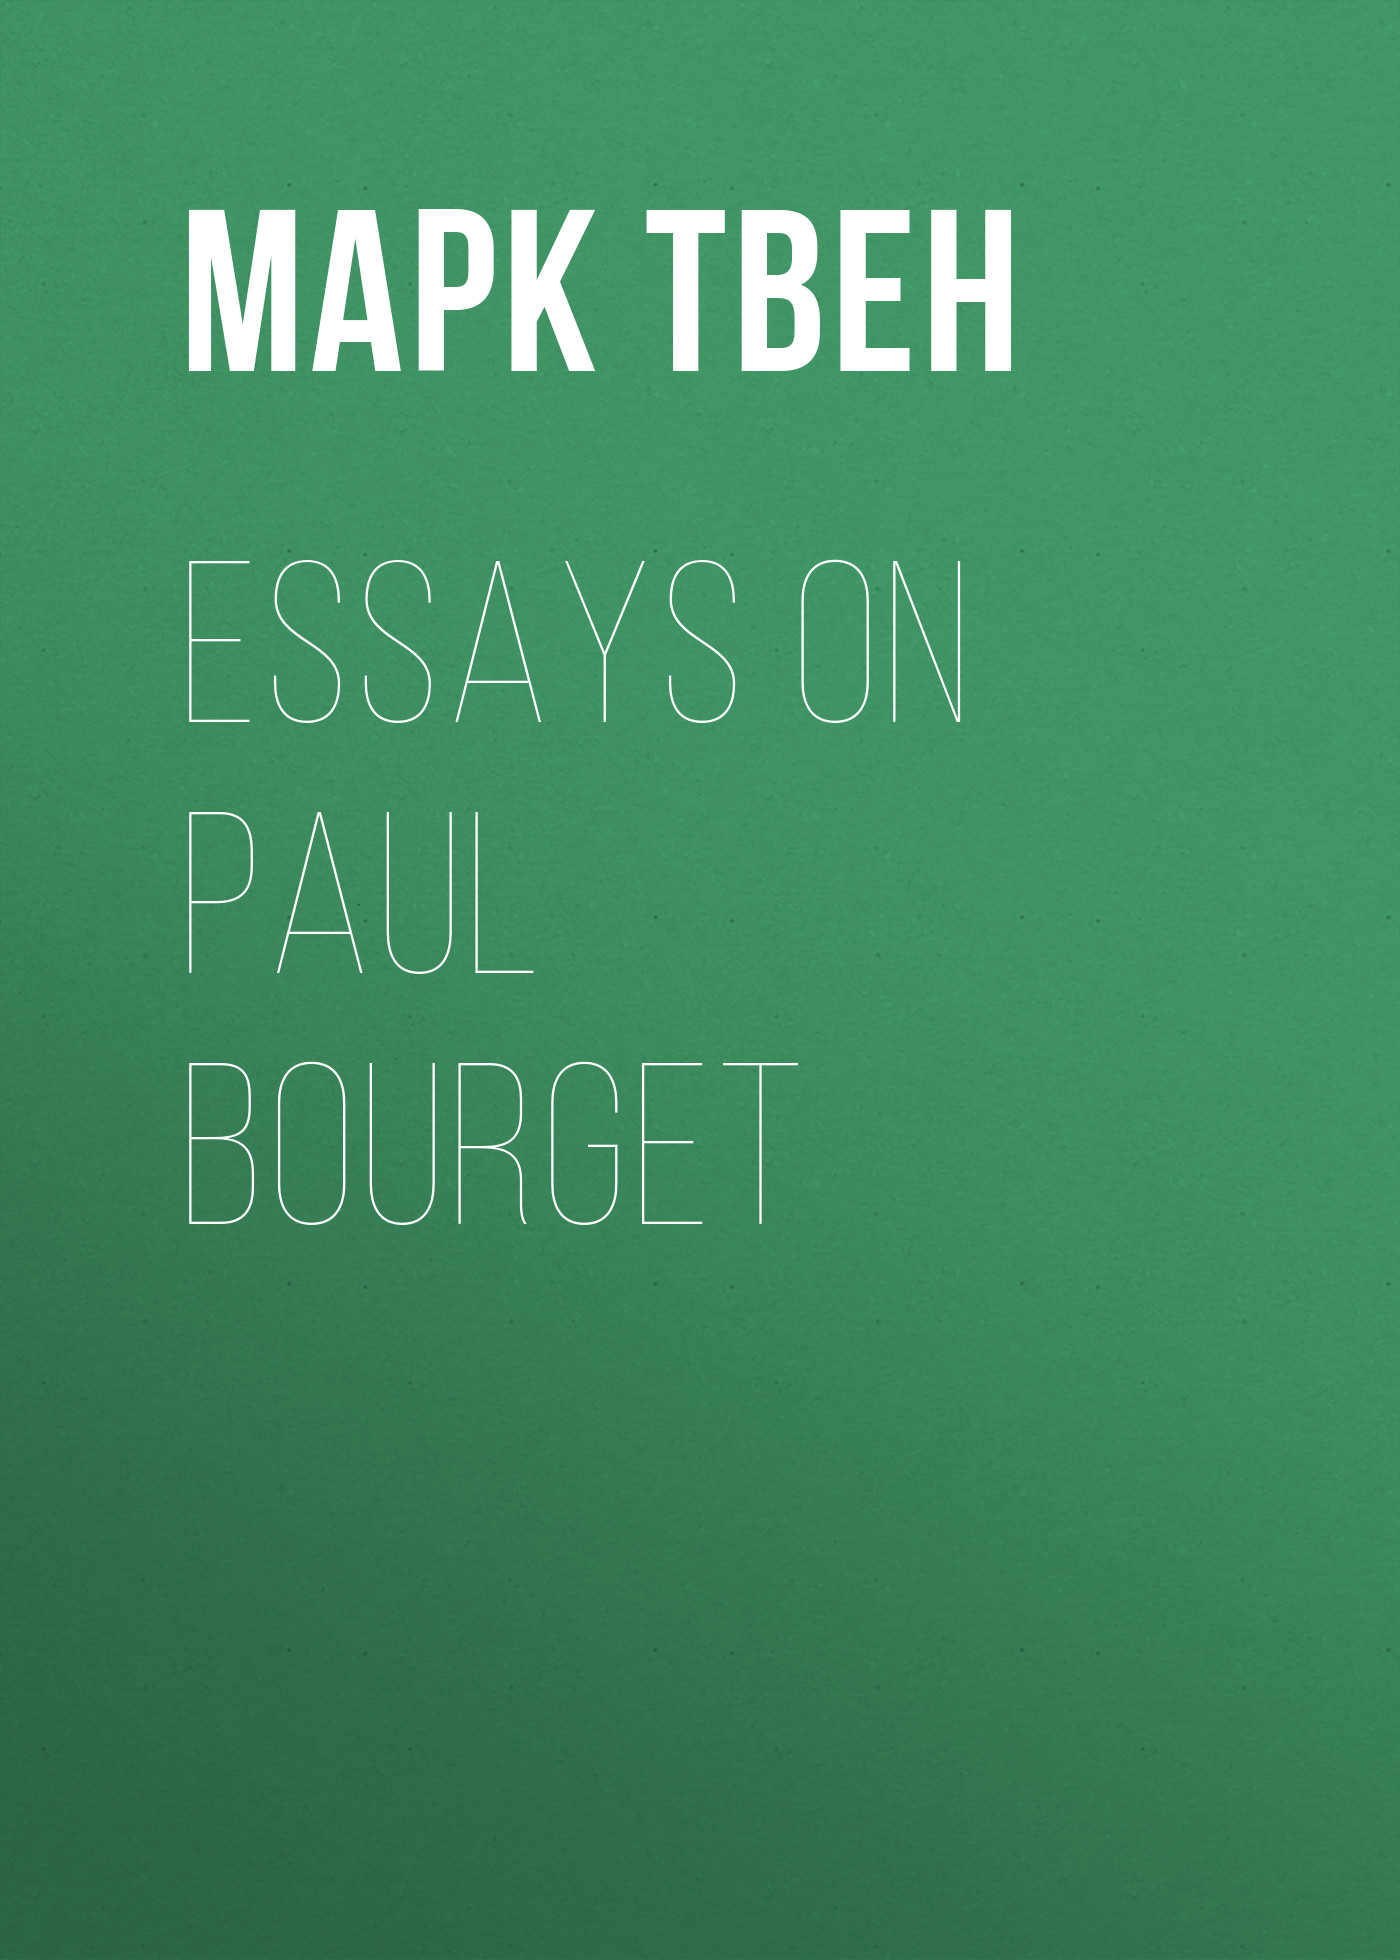 essays on parasitism Марк Твен Essays on Paul Bourget